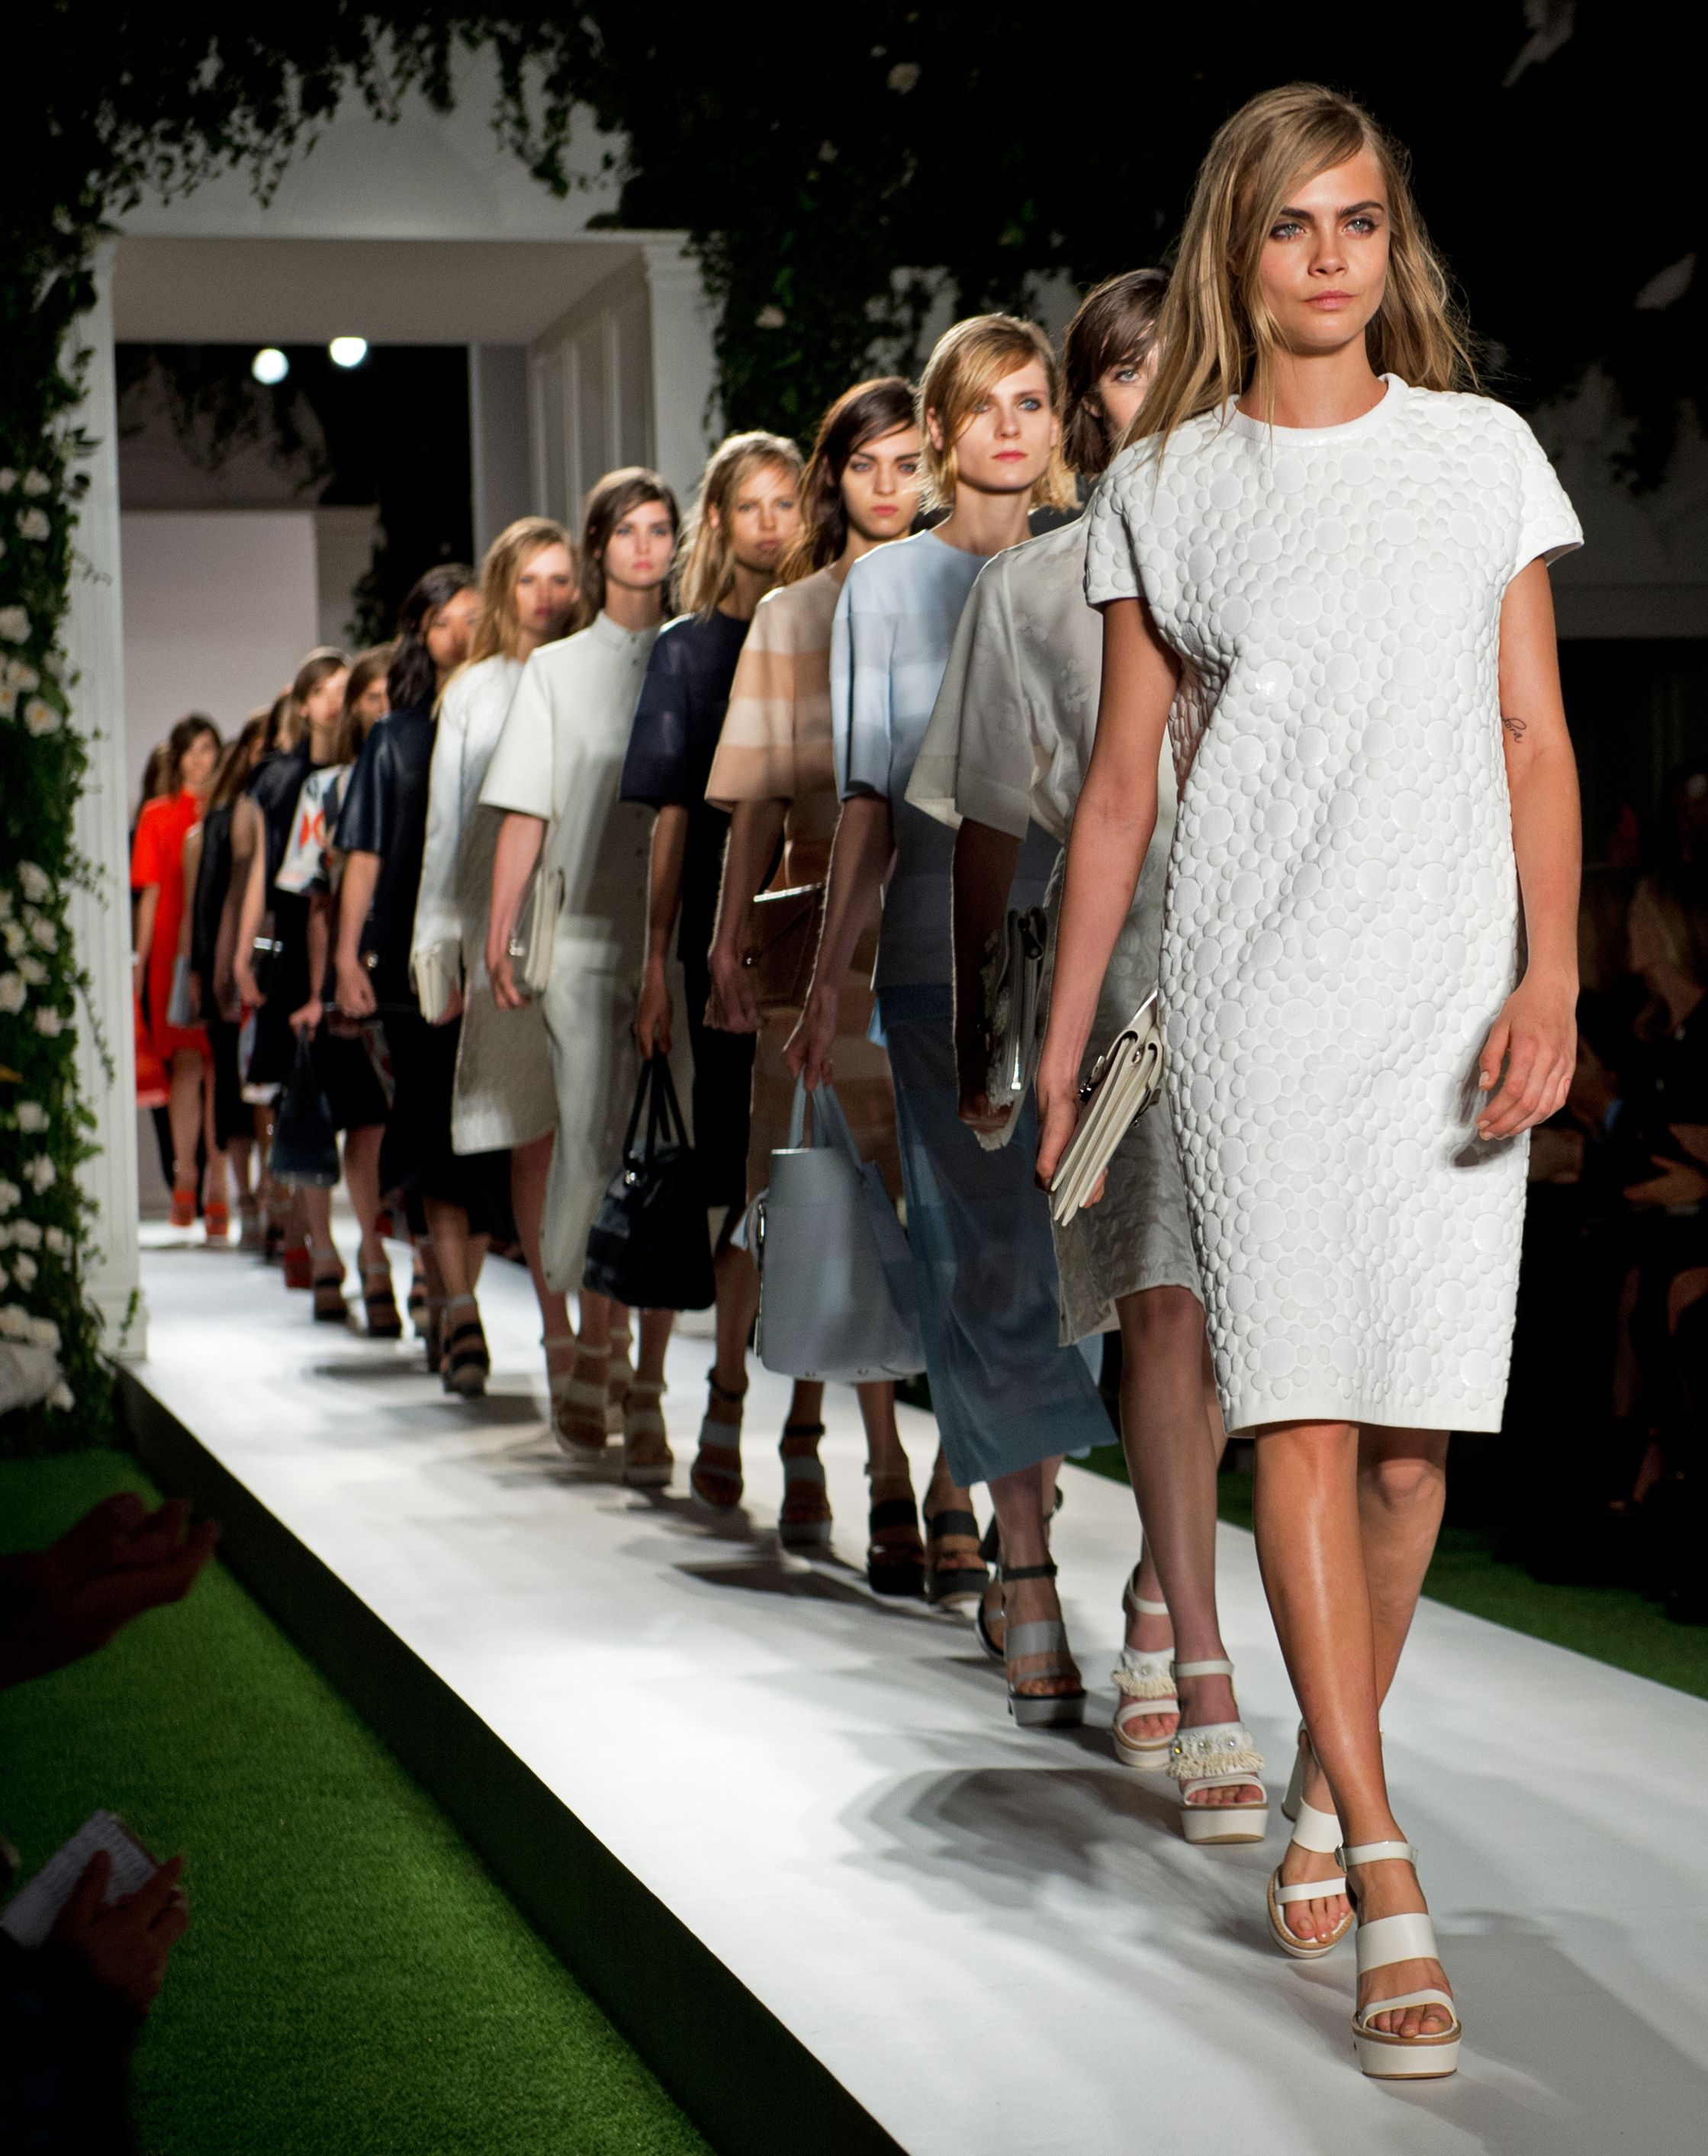 f9d11a6768 Cara Delevingne leads the final walk on the Mulberry catwalk for the SS14  show at London Fashion Week.